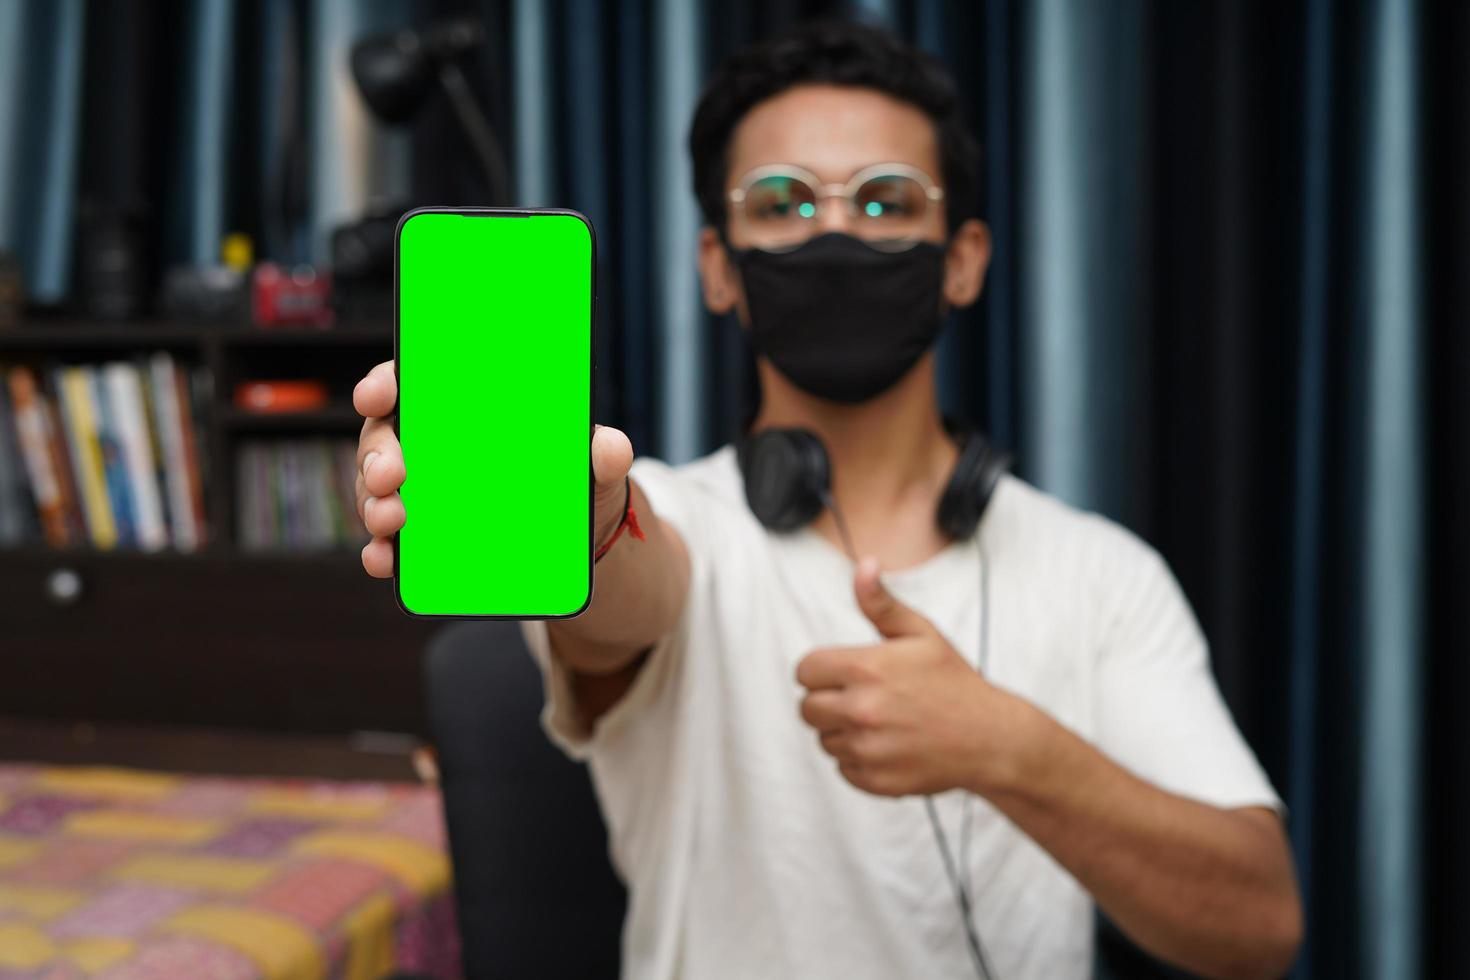 Young Indian boy holding a phone with green screen photo